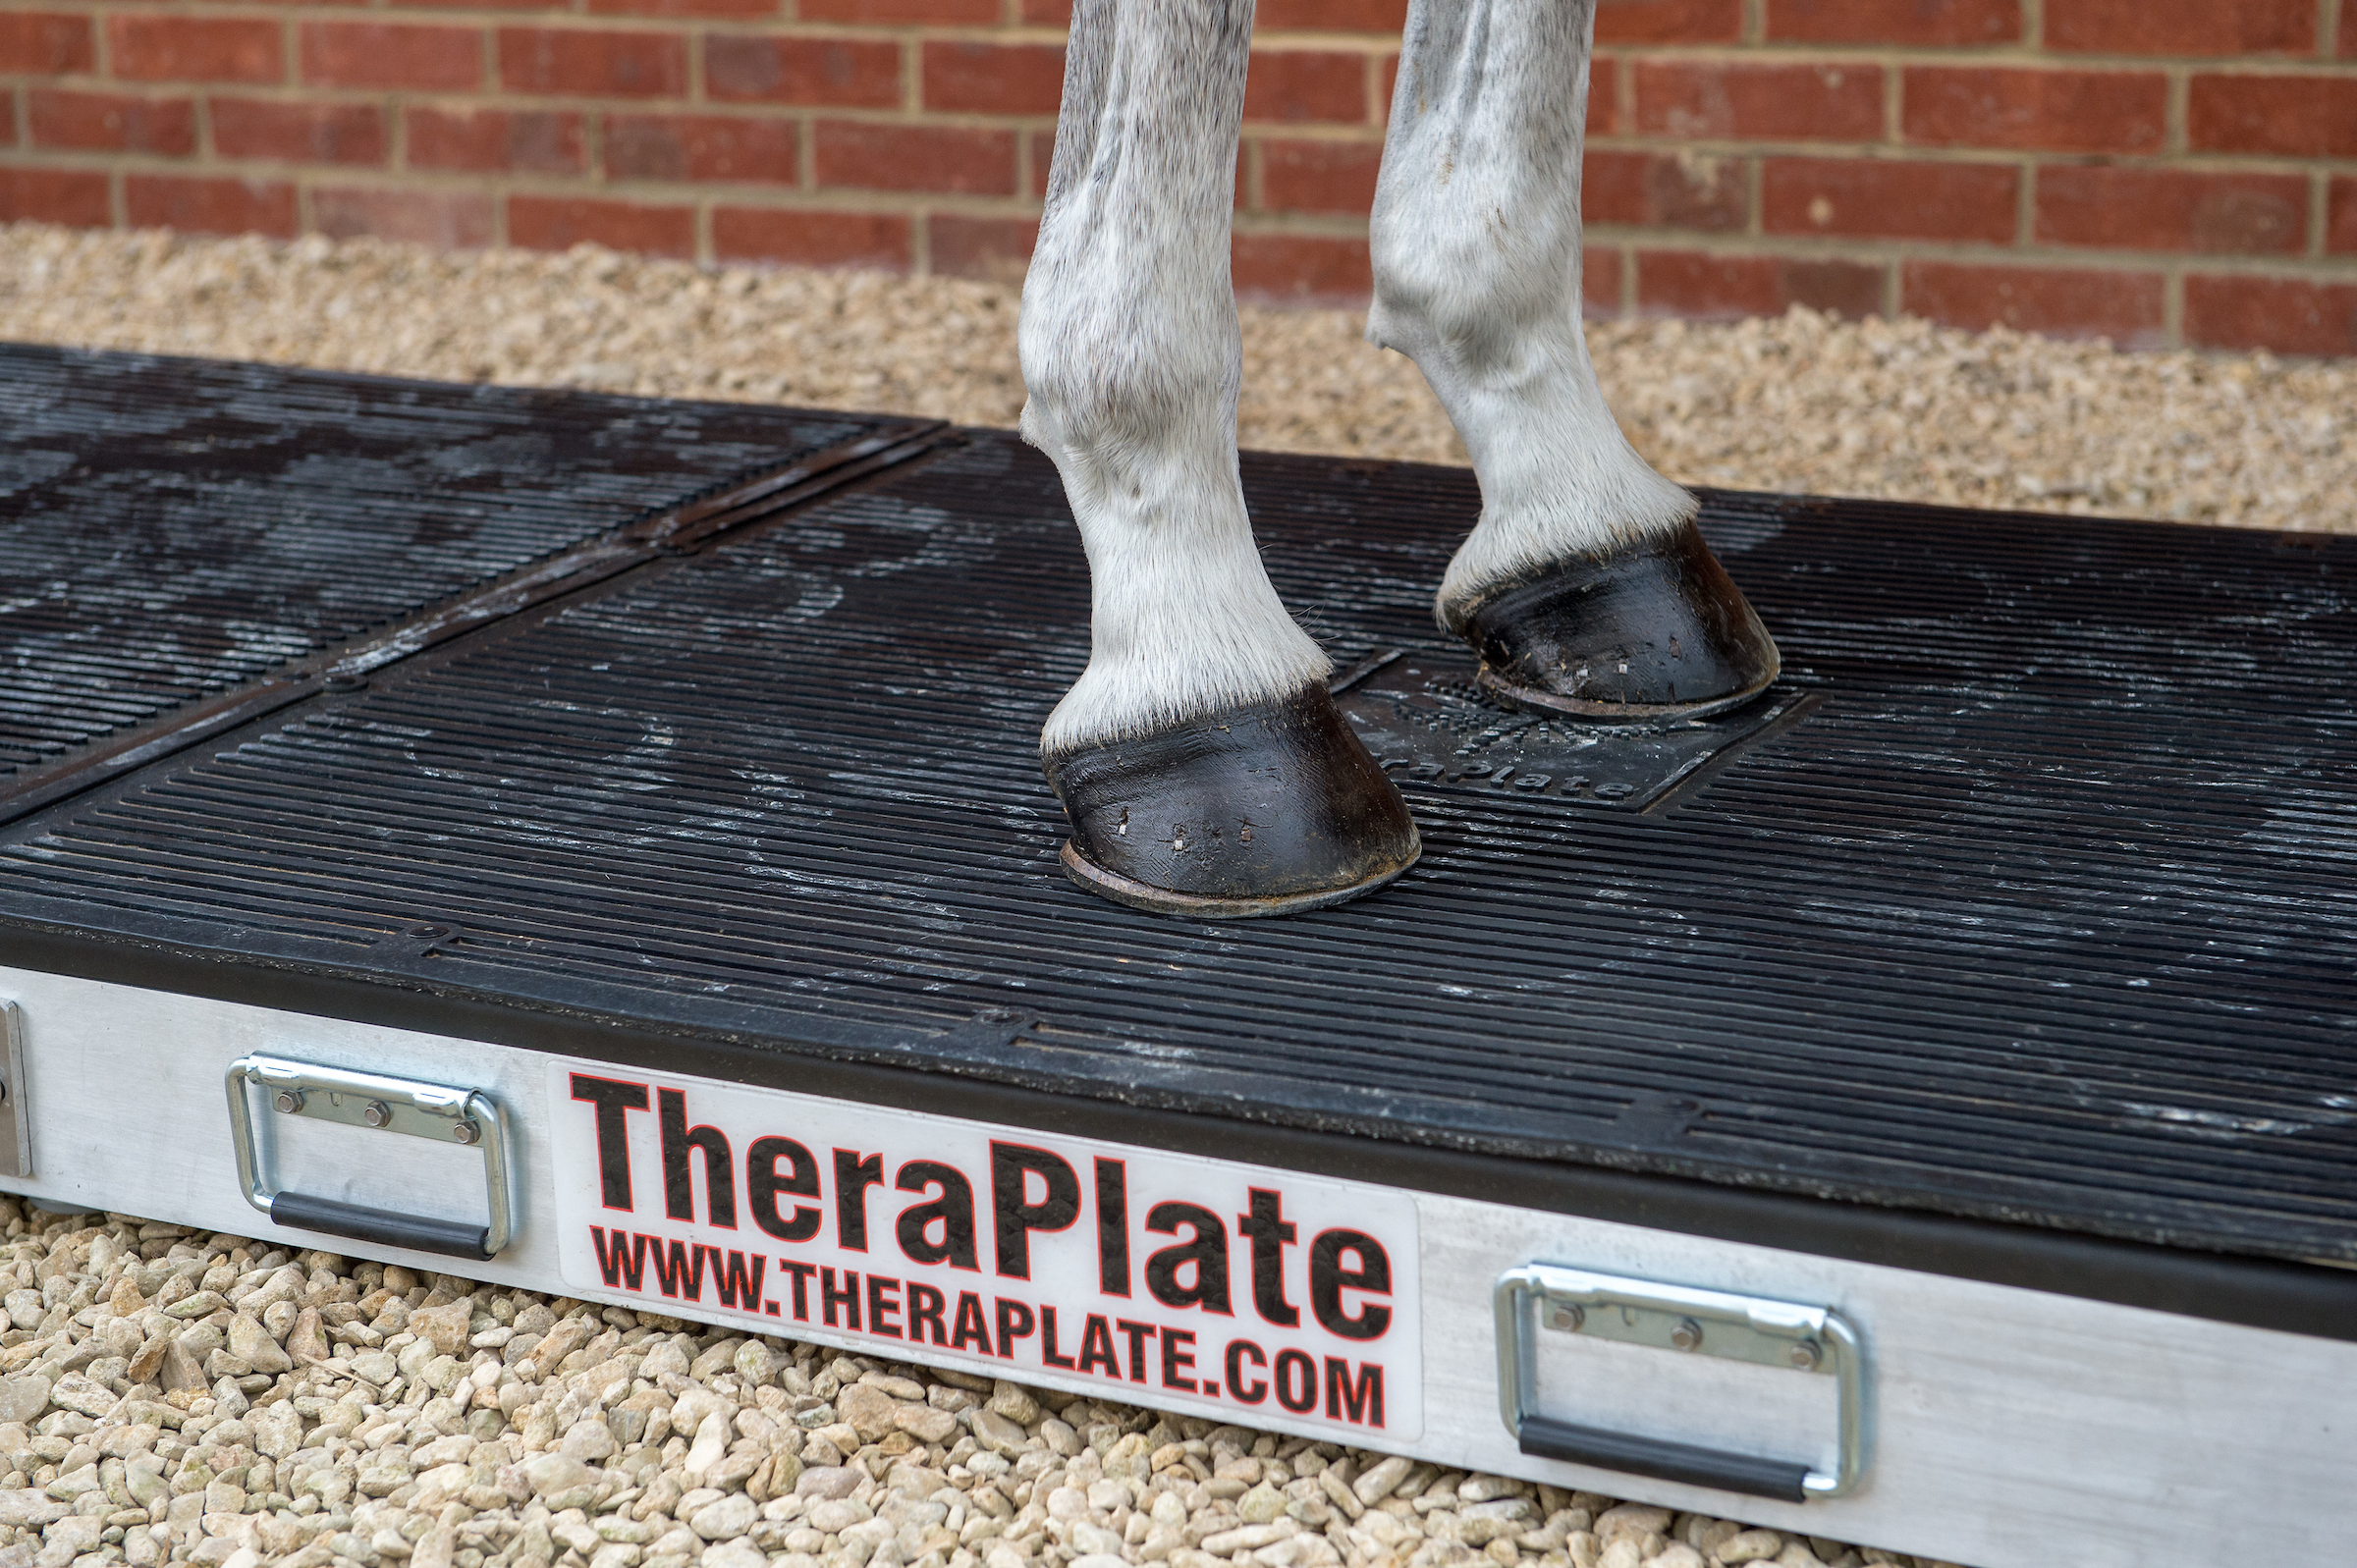 Win a theraplate